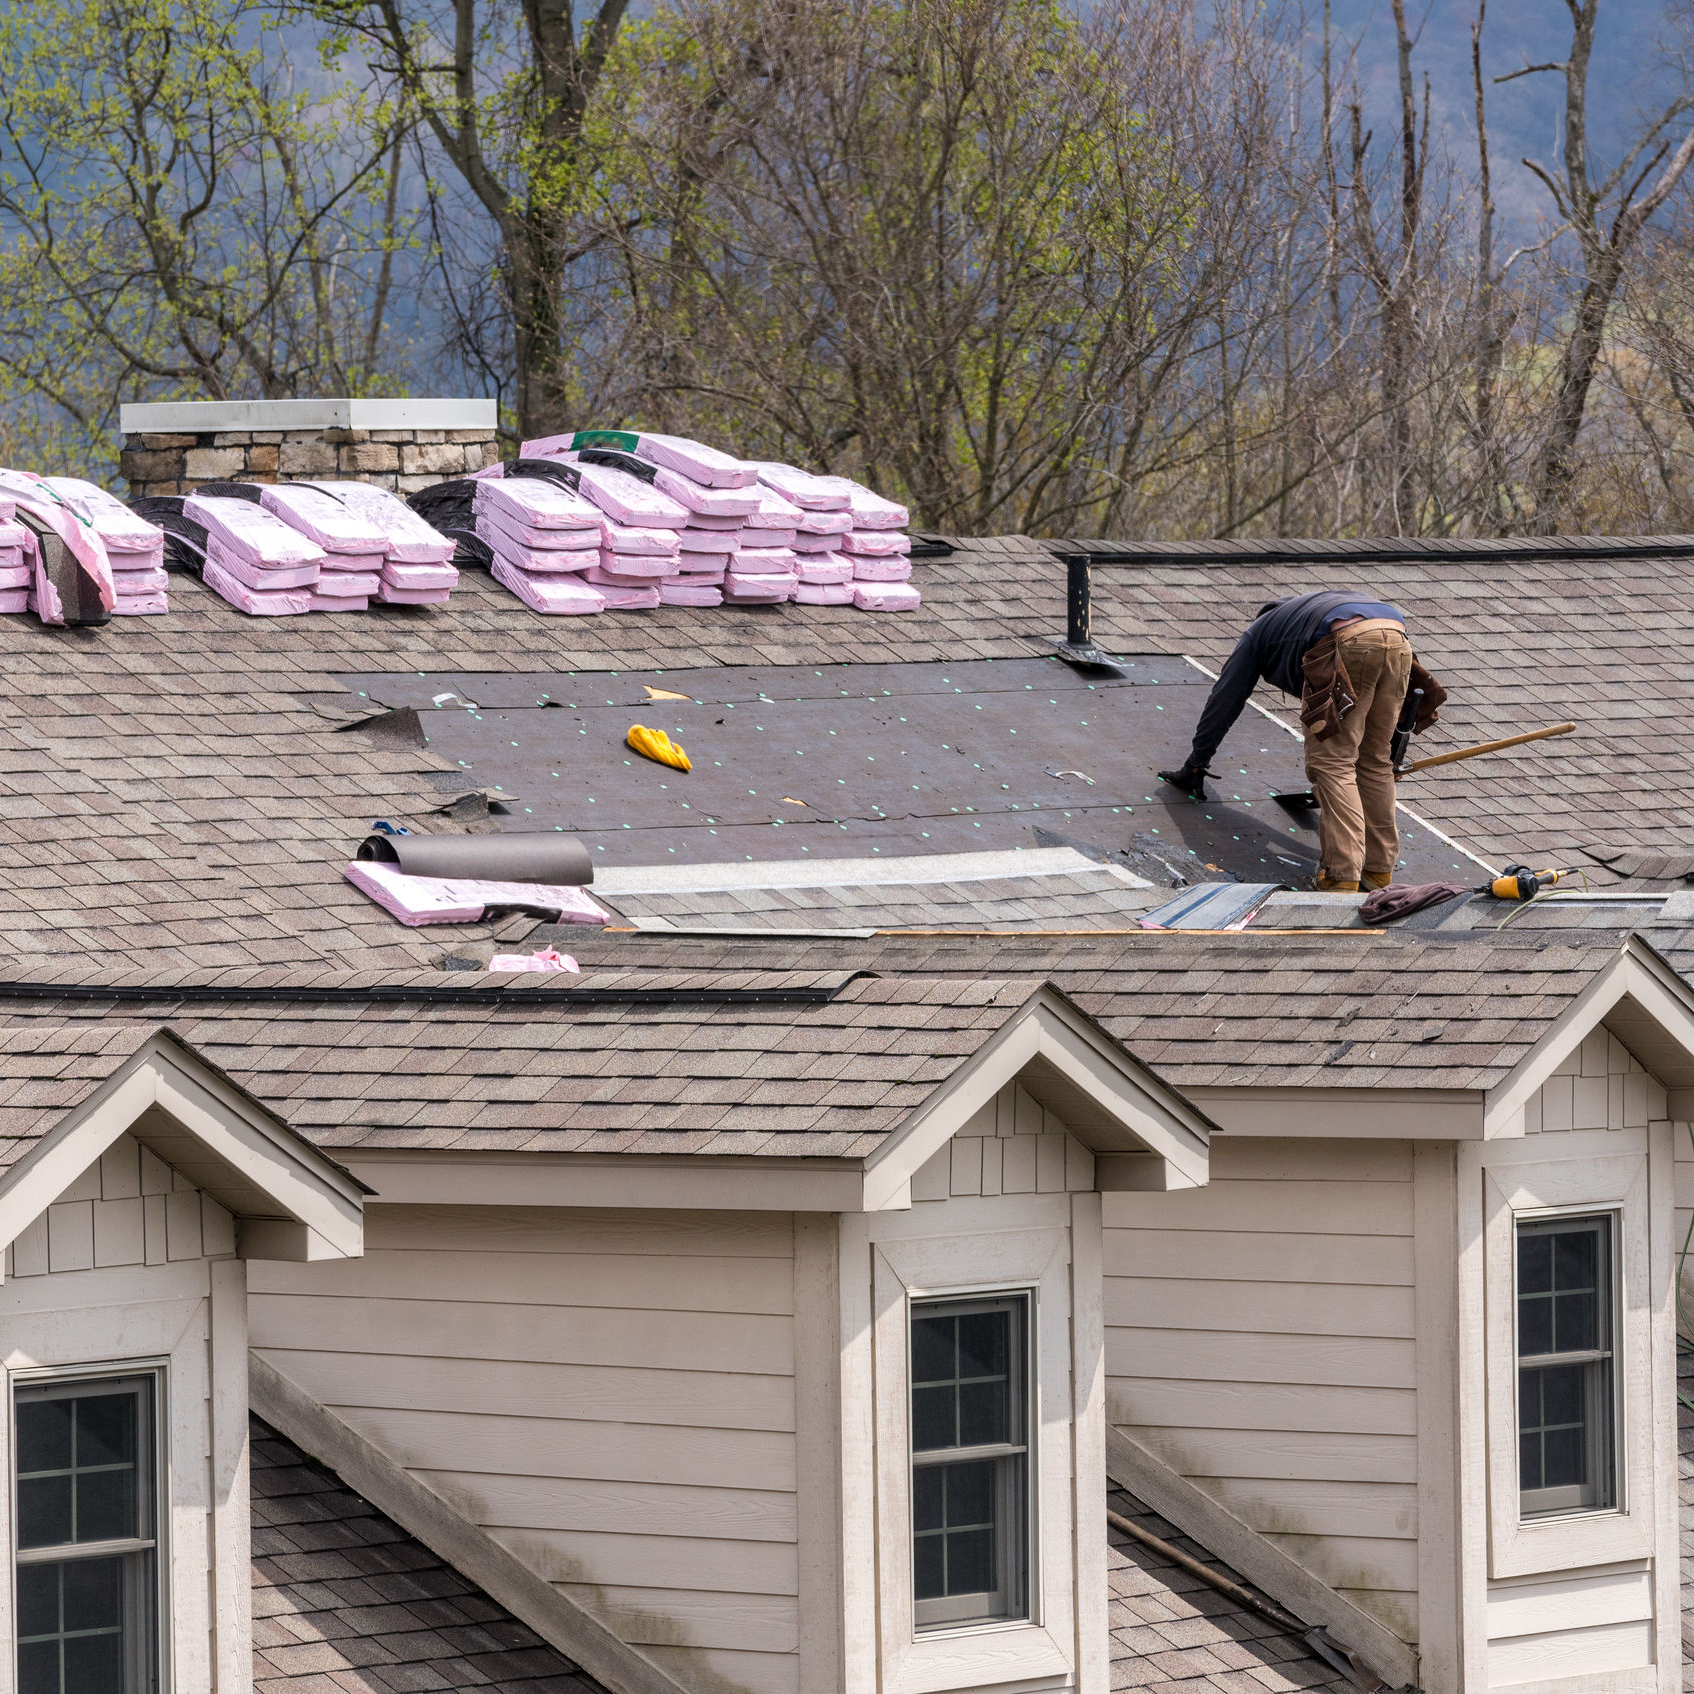 A roofer installing a roof